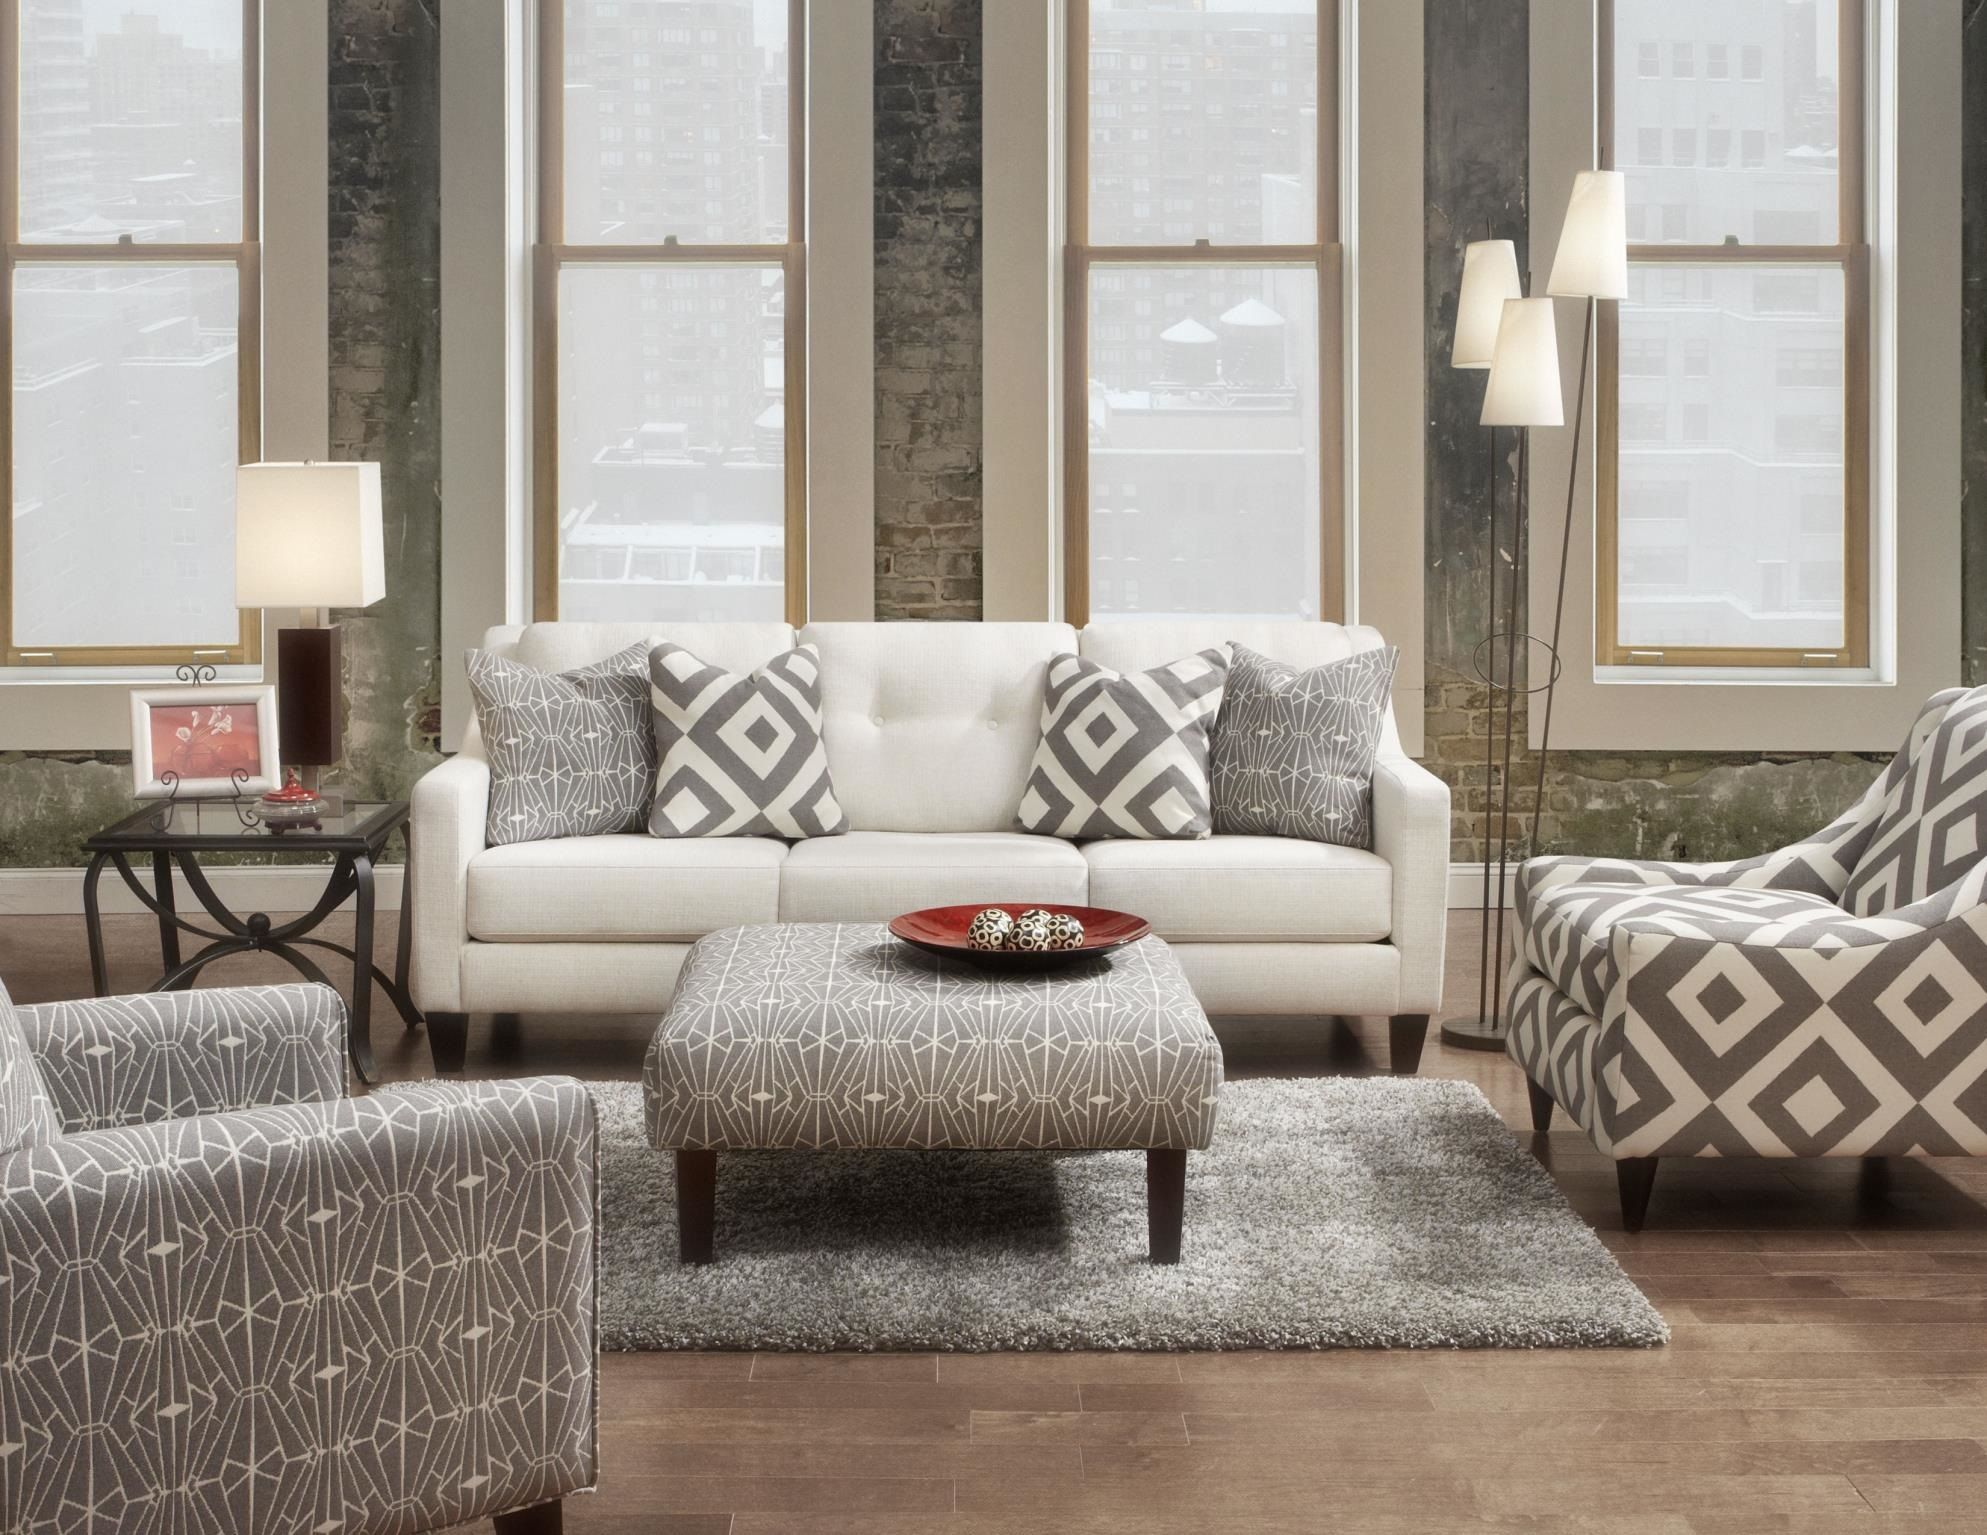 Charmant Caroline Living Room Set By Fusion At Crowley Furniture In Kansas City